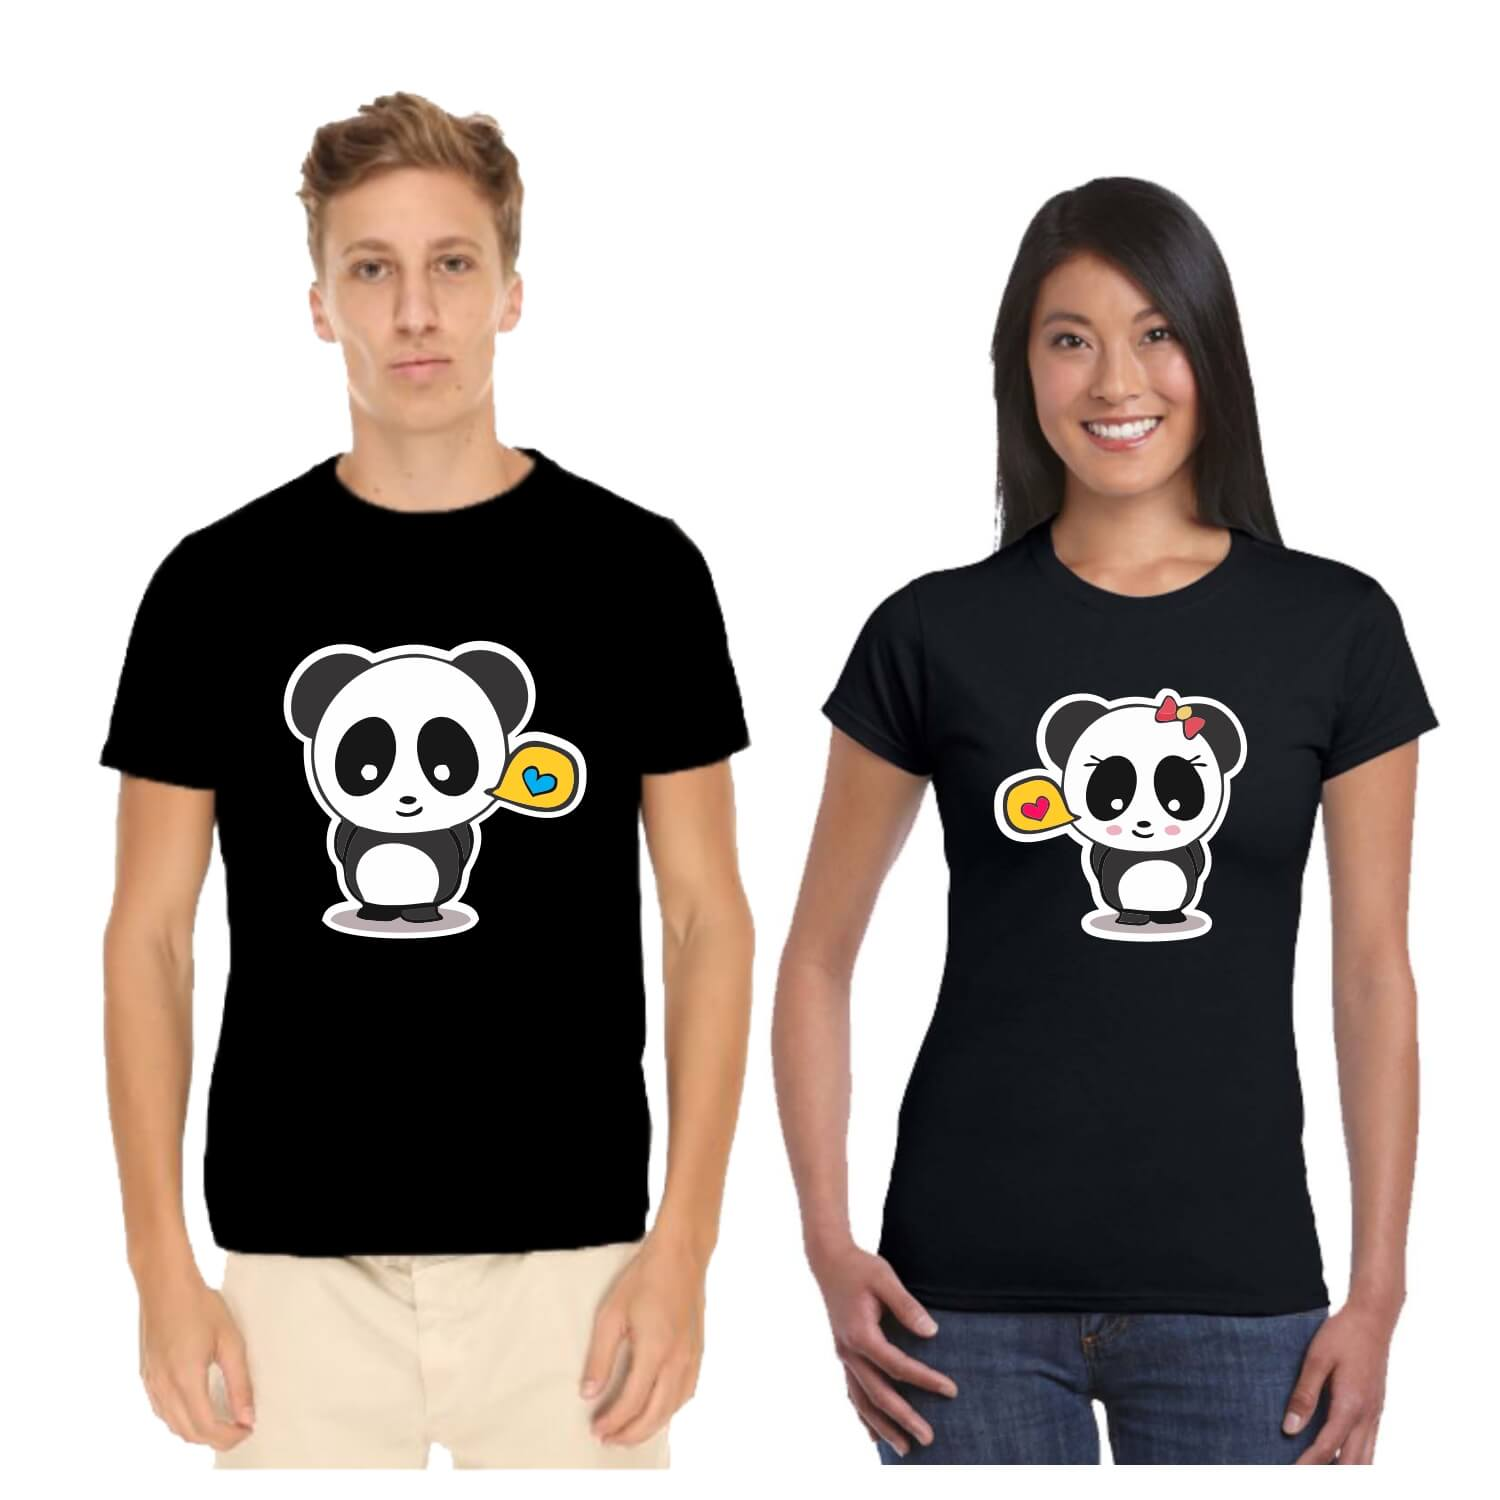 63020054db Cute Panda Couple T-shirt for Valentine Day | Giftsmate